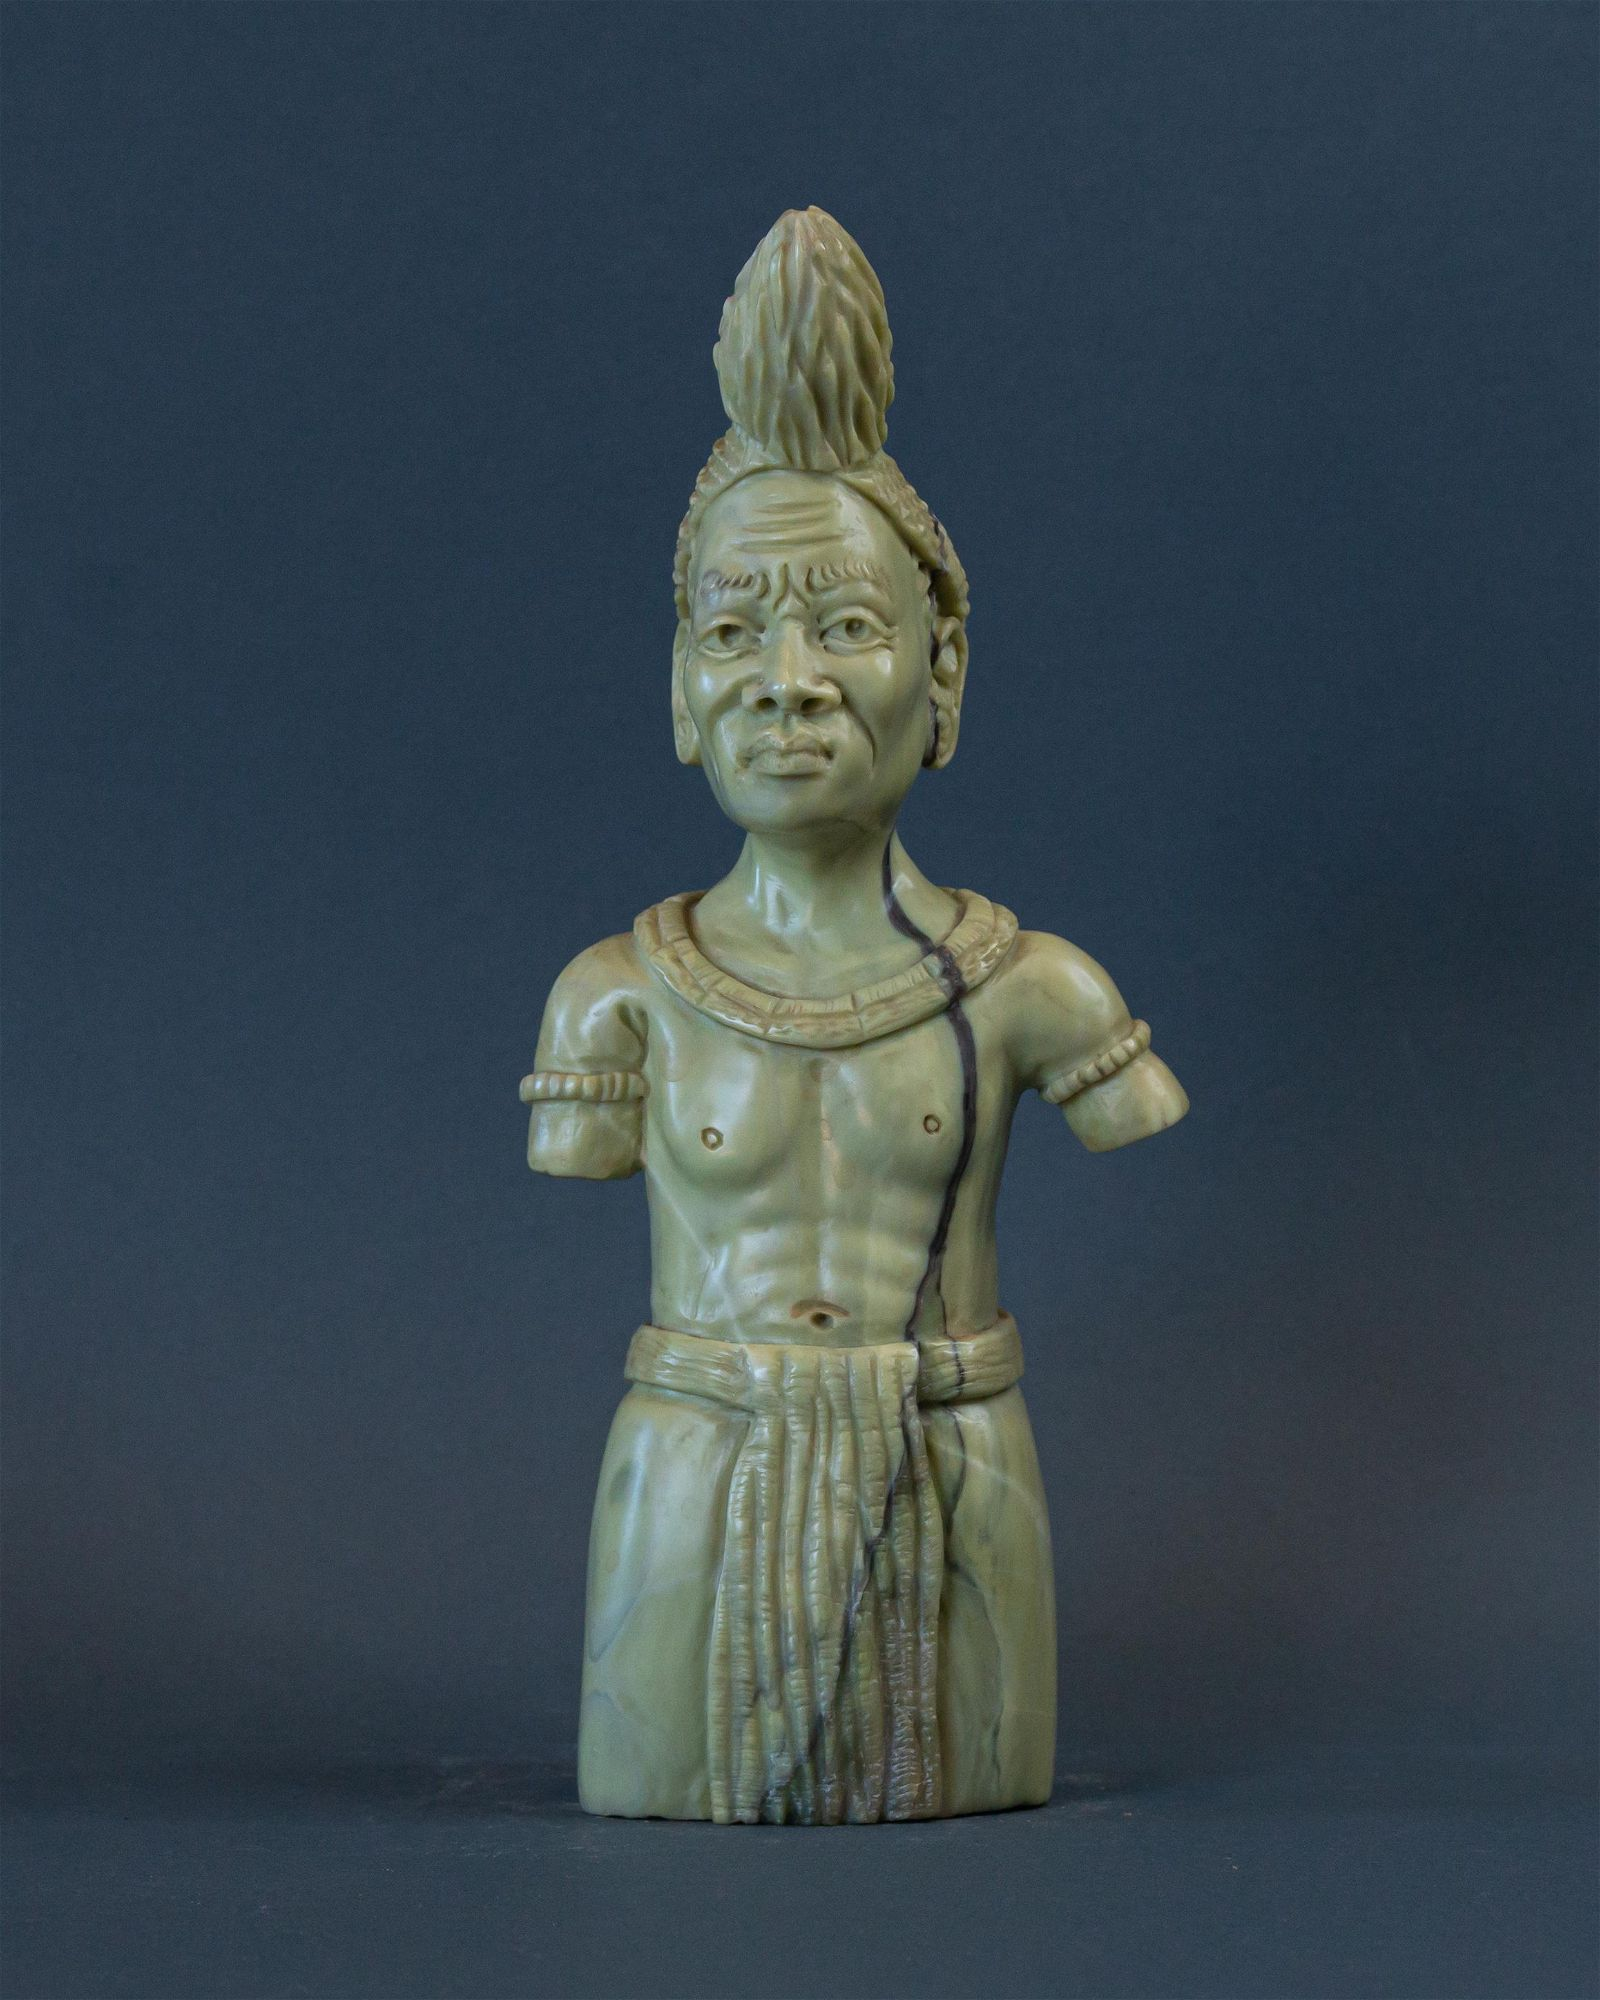 African Figurine of Traditional Zulu Witch Doctor